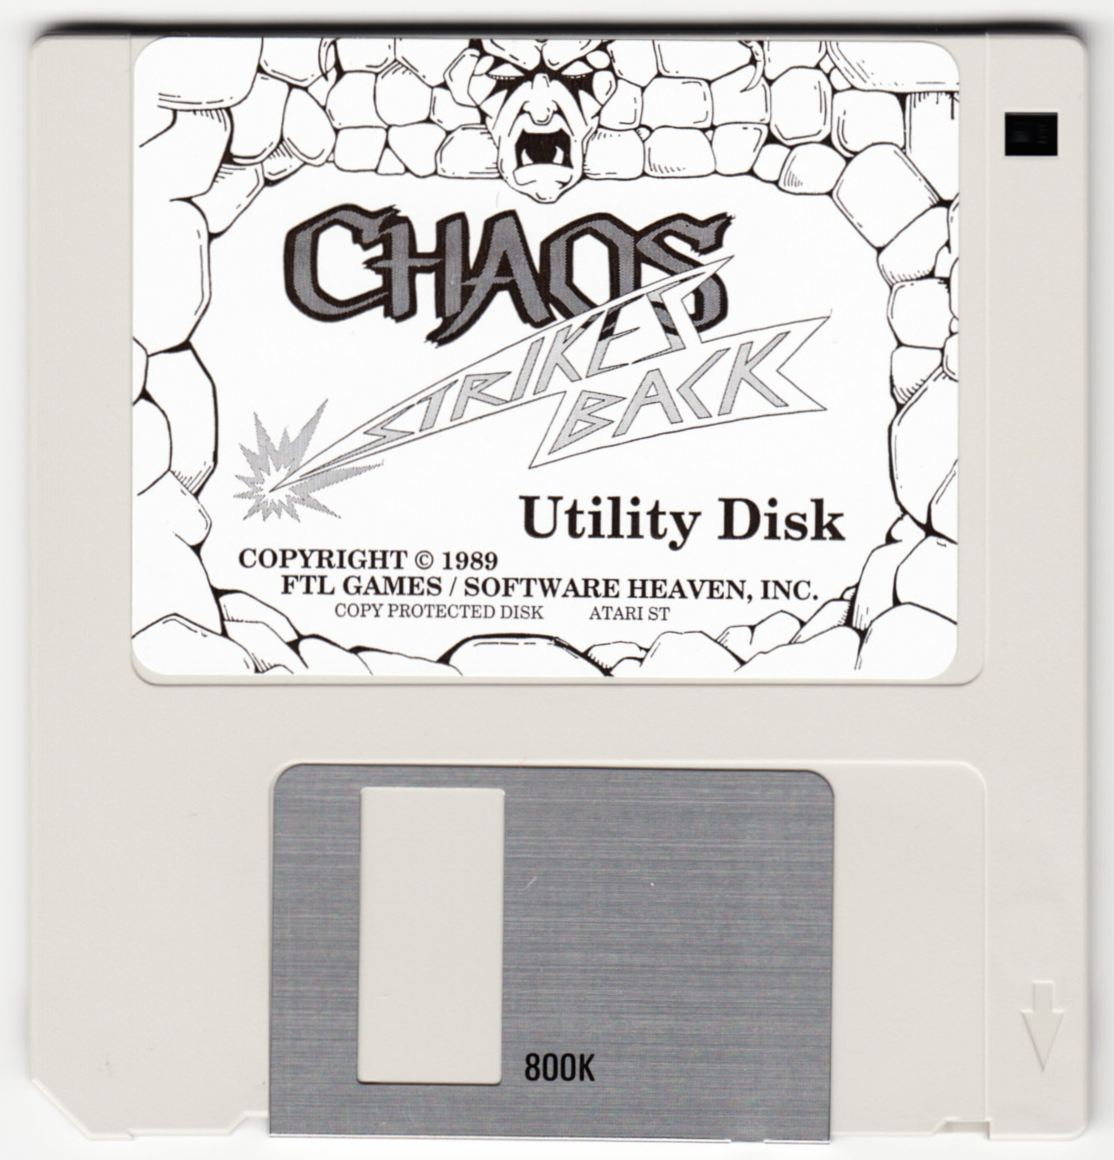 Game - Chaos Strikes Back - UK - Atari ST - Utility Disk - Front - Scan